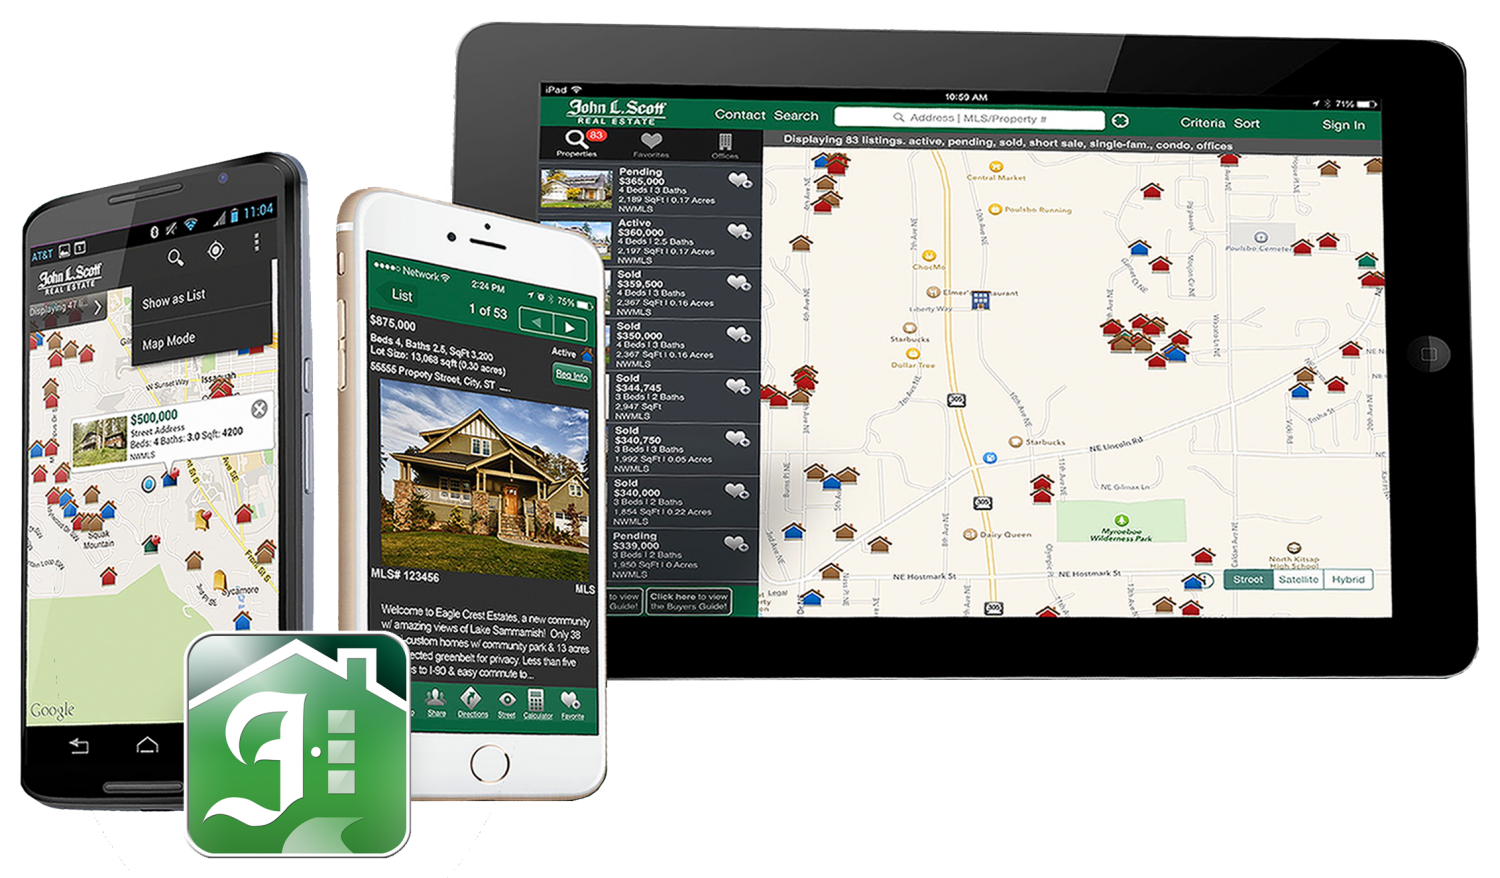 Find Homes for Sale Fast & Easy with the Home Search app.